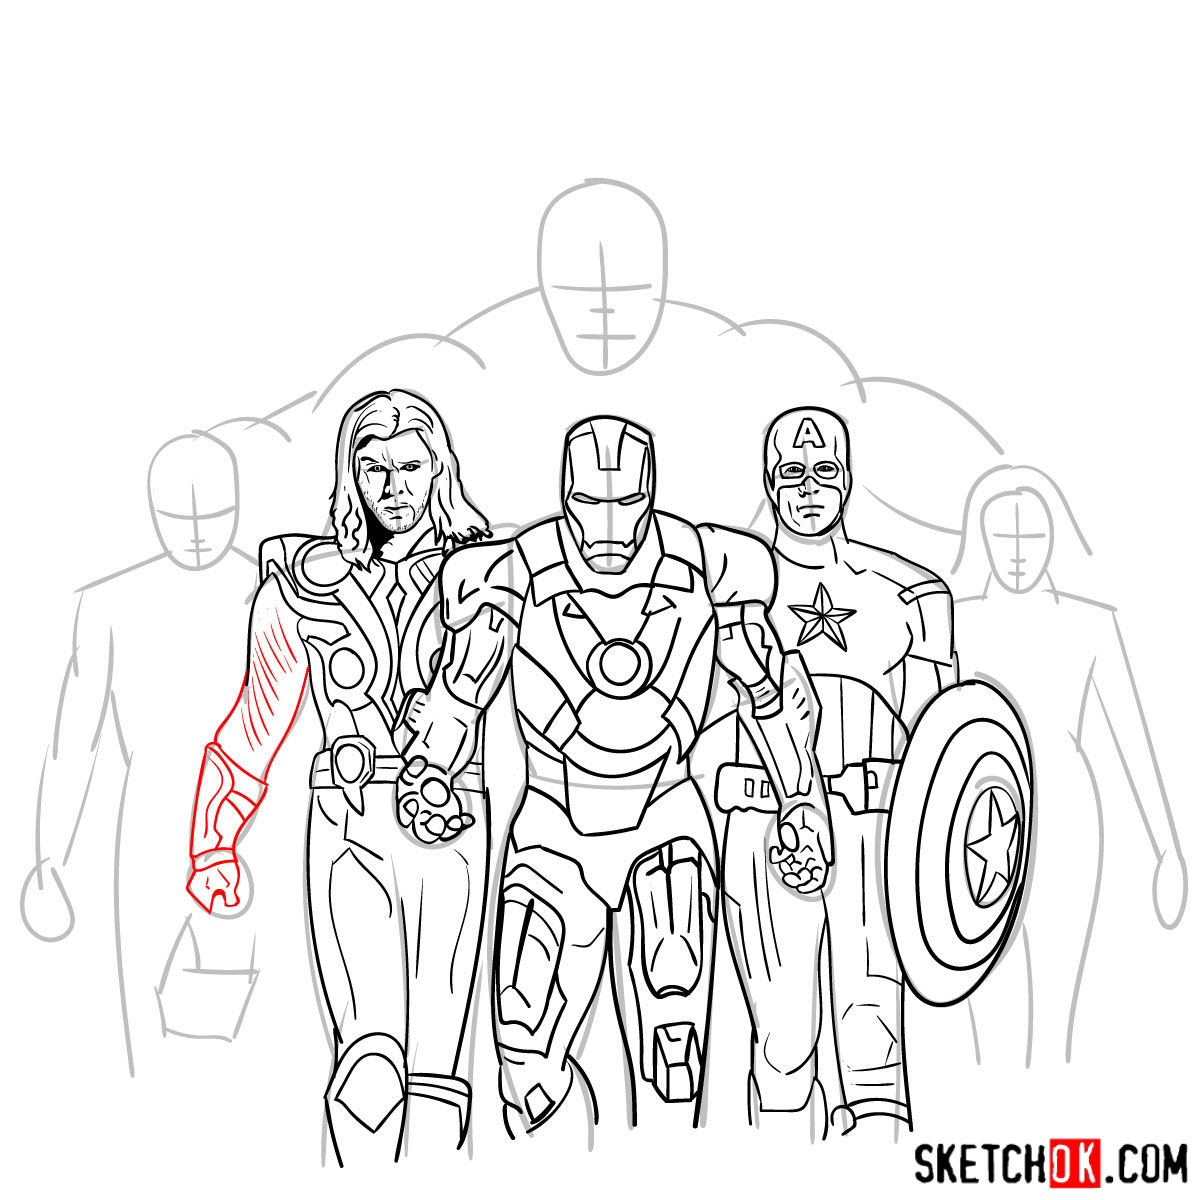 How To Draw The Avengers Team